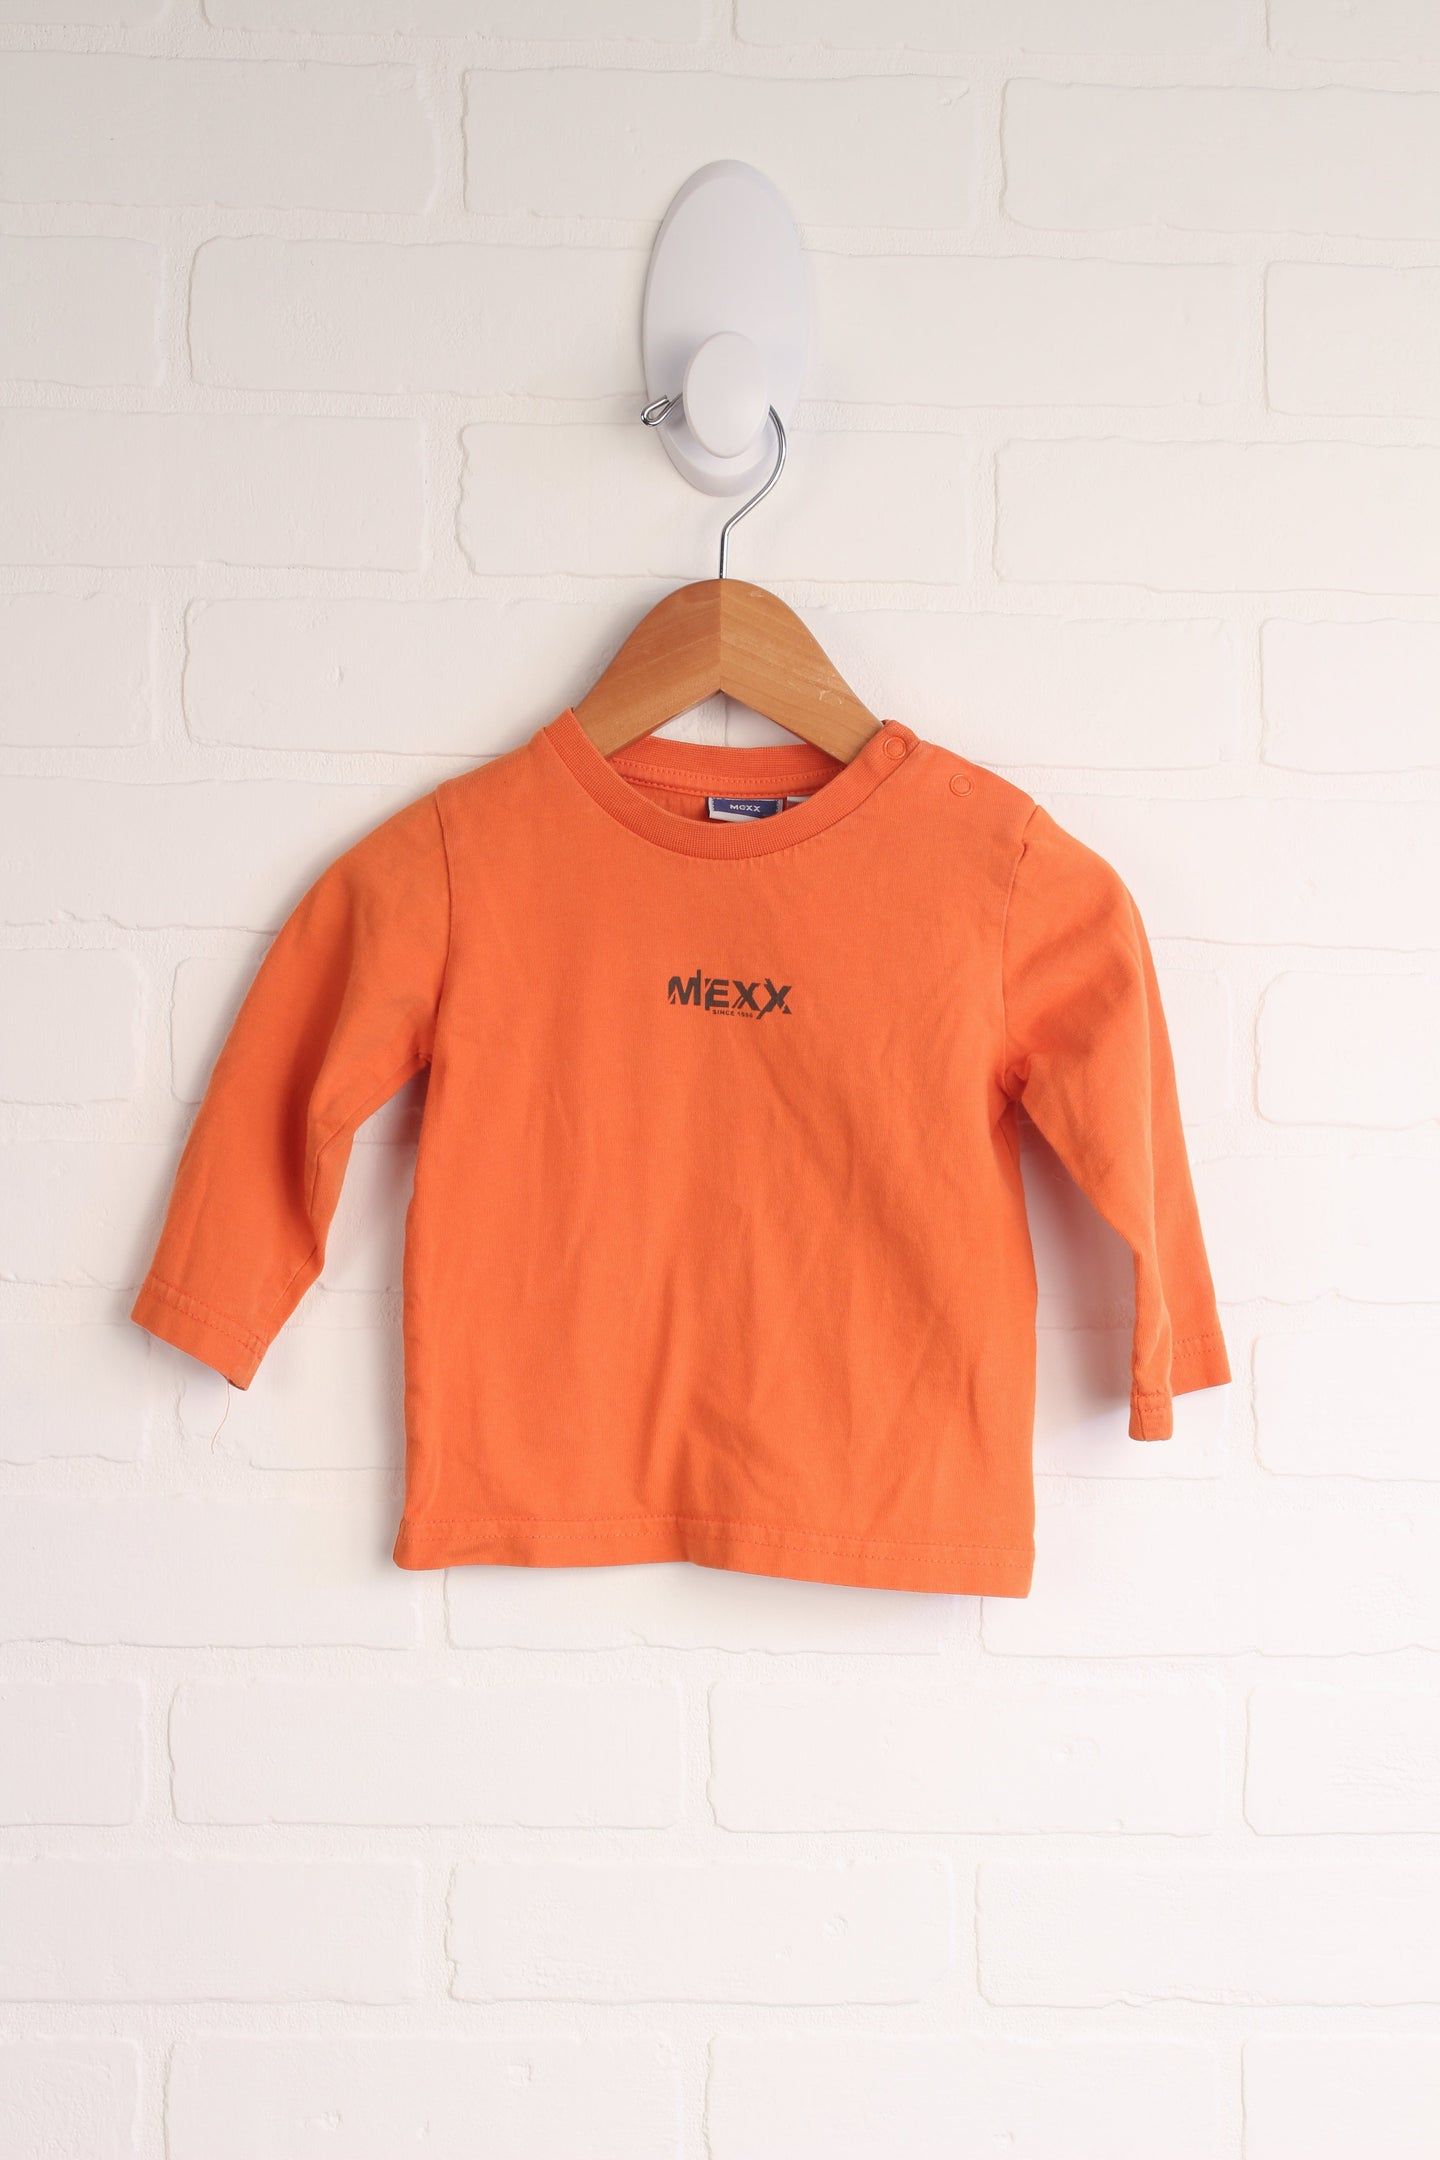 Orange Long-Sleeved Logo T-Shirt (Size 74 / 9-12M)